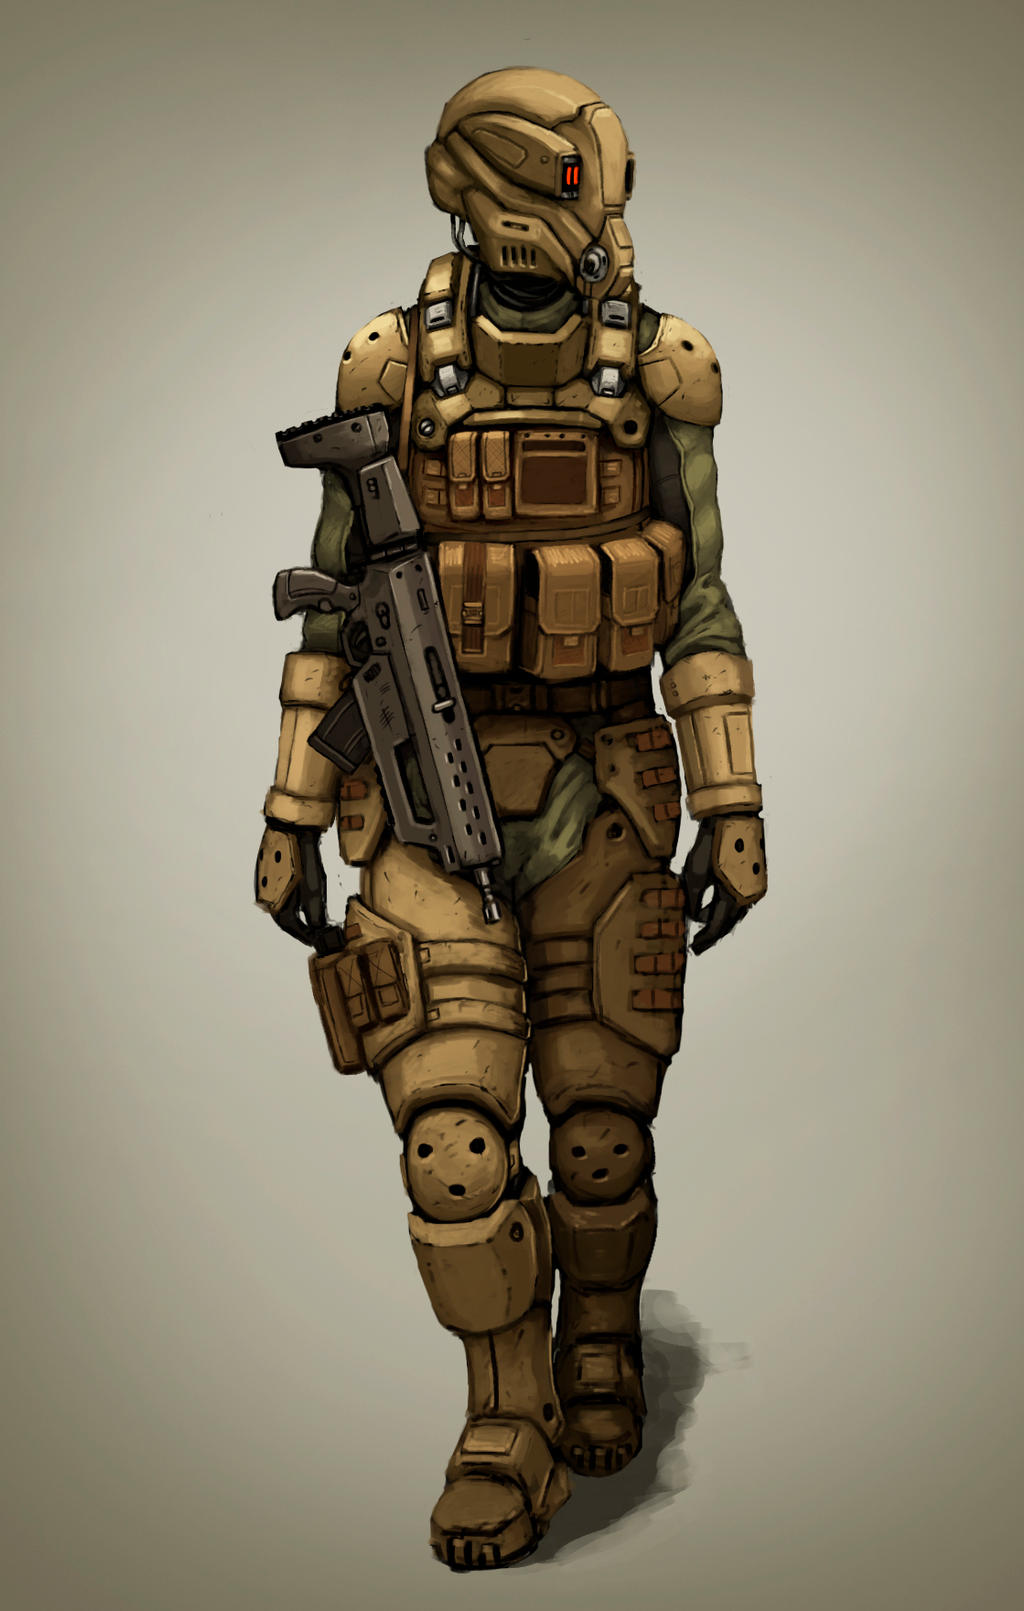 Future Soldier by FonteArt on DeviantArt